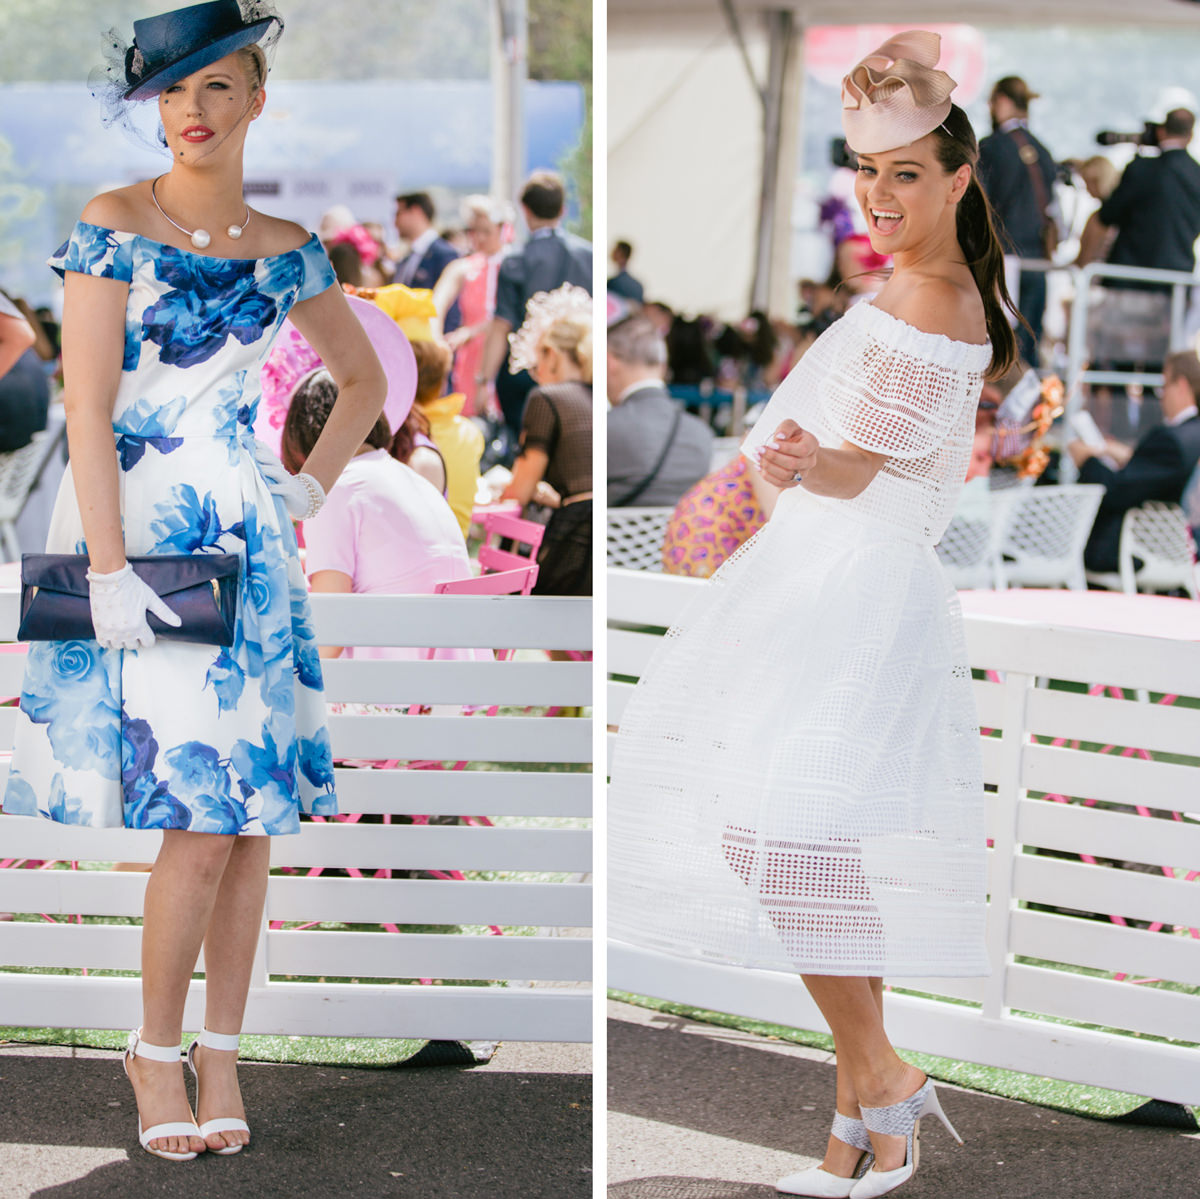 melbourne outfits - spring racing fashion trends 2015